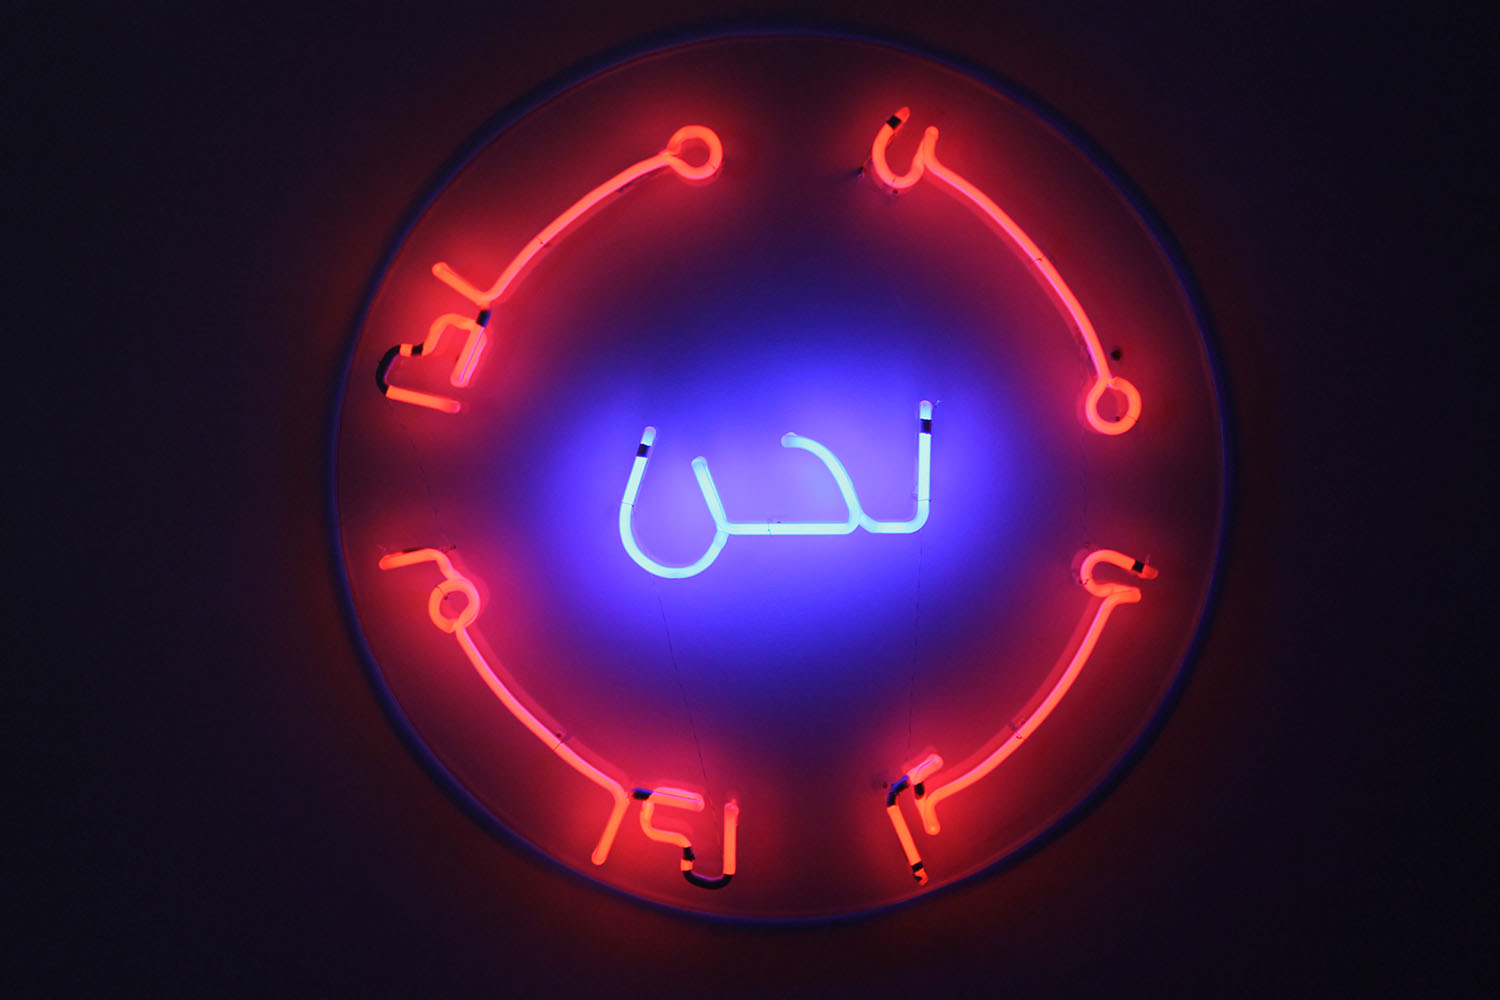 Owanto, 'What, Who, Where, Why are we?', 2012, Neon, plexiglass, edition of 3 + 1 A. P 100 cm, Courtesy of VOICE gallery